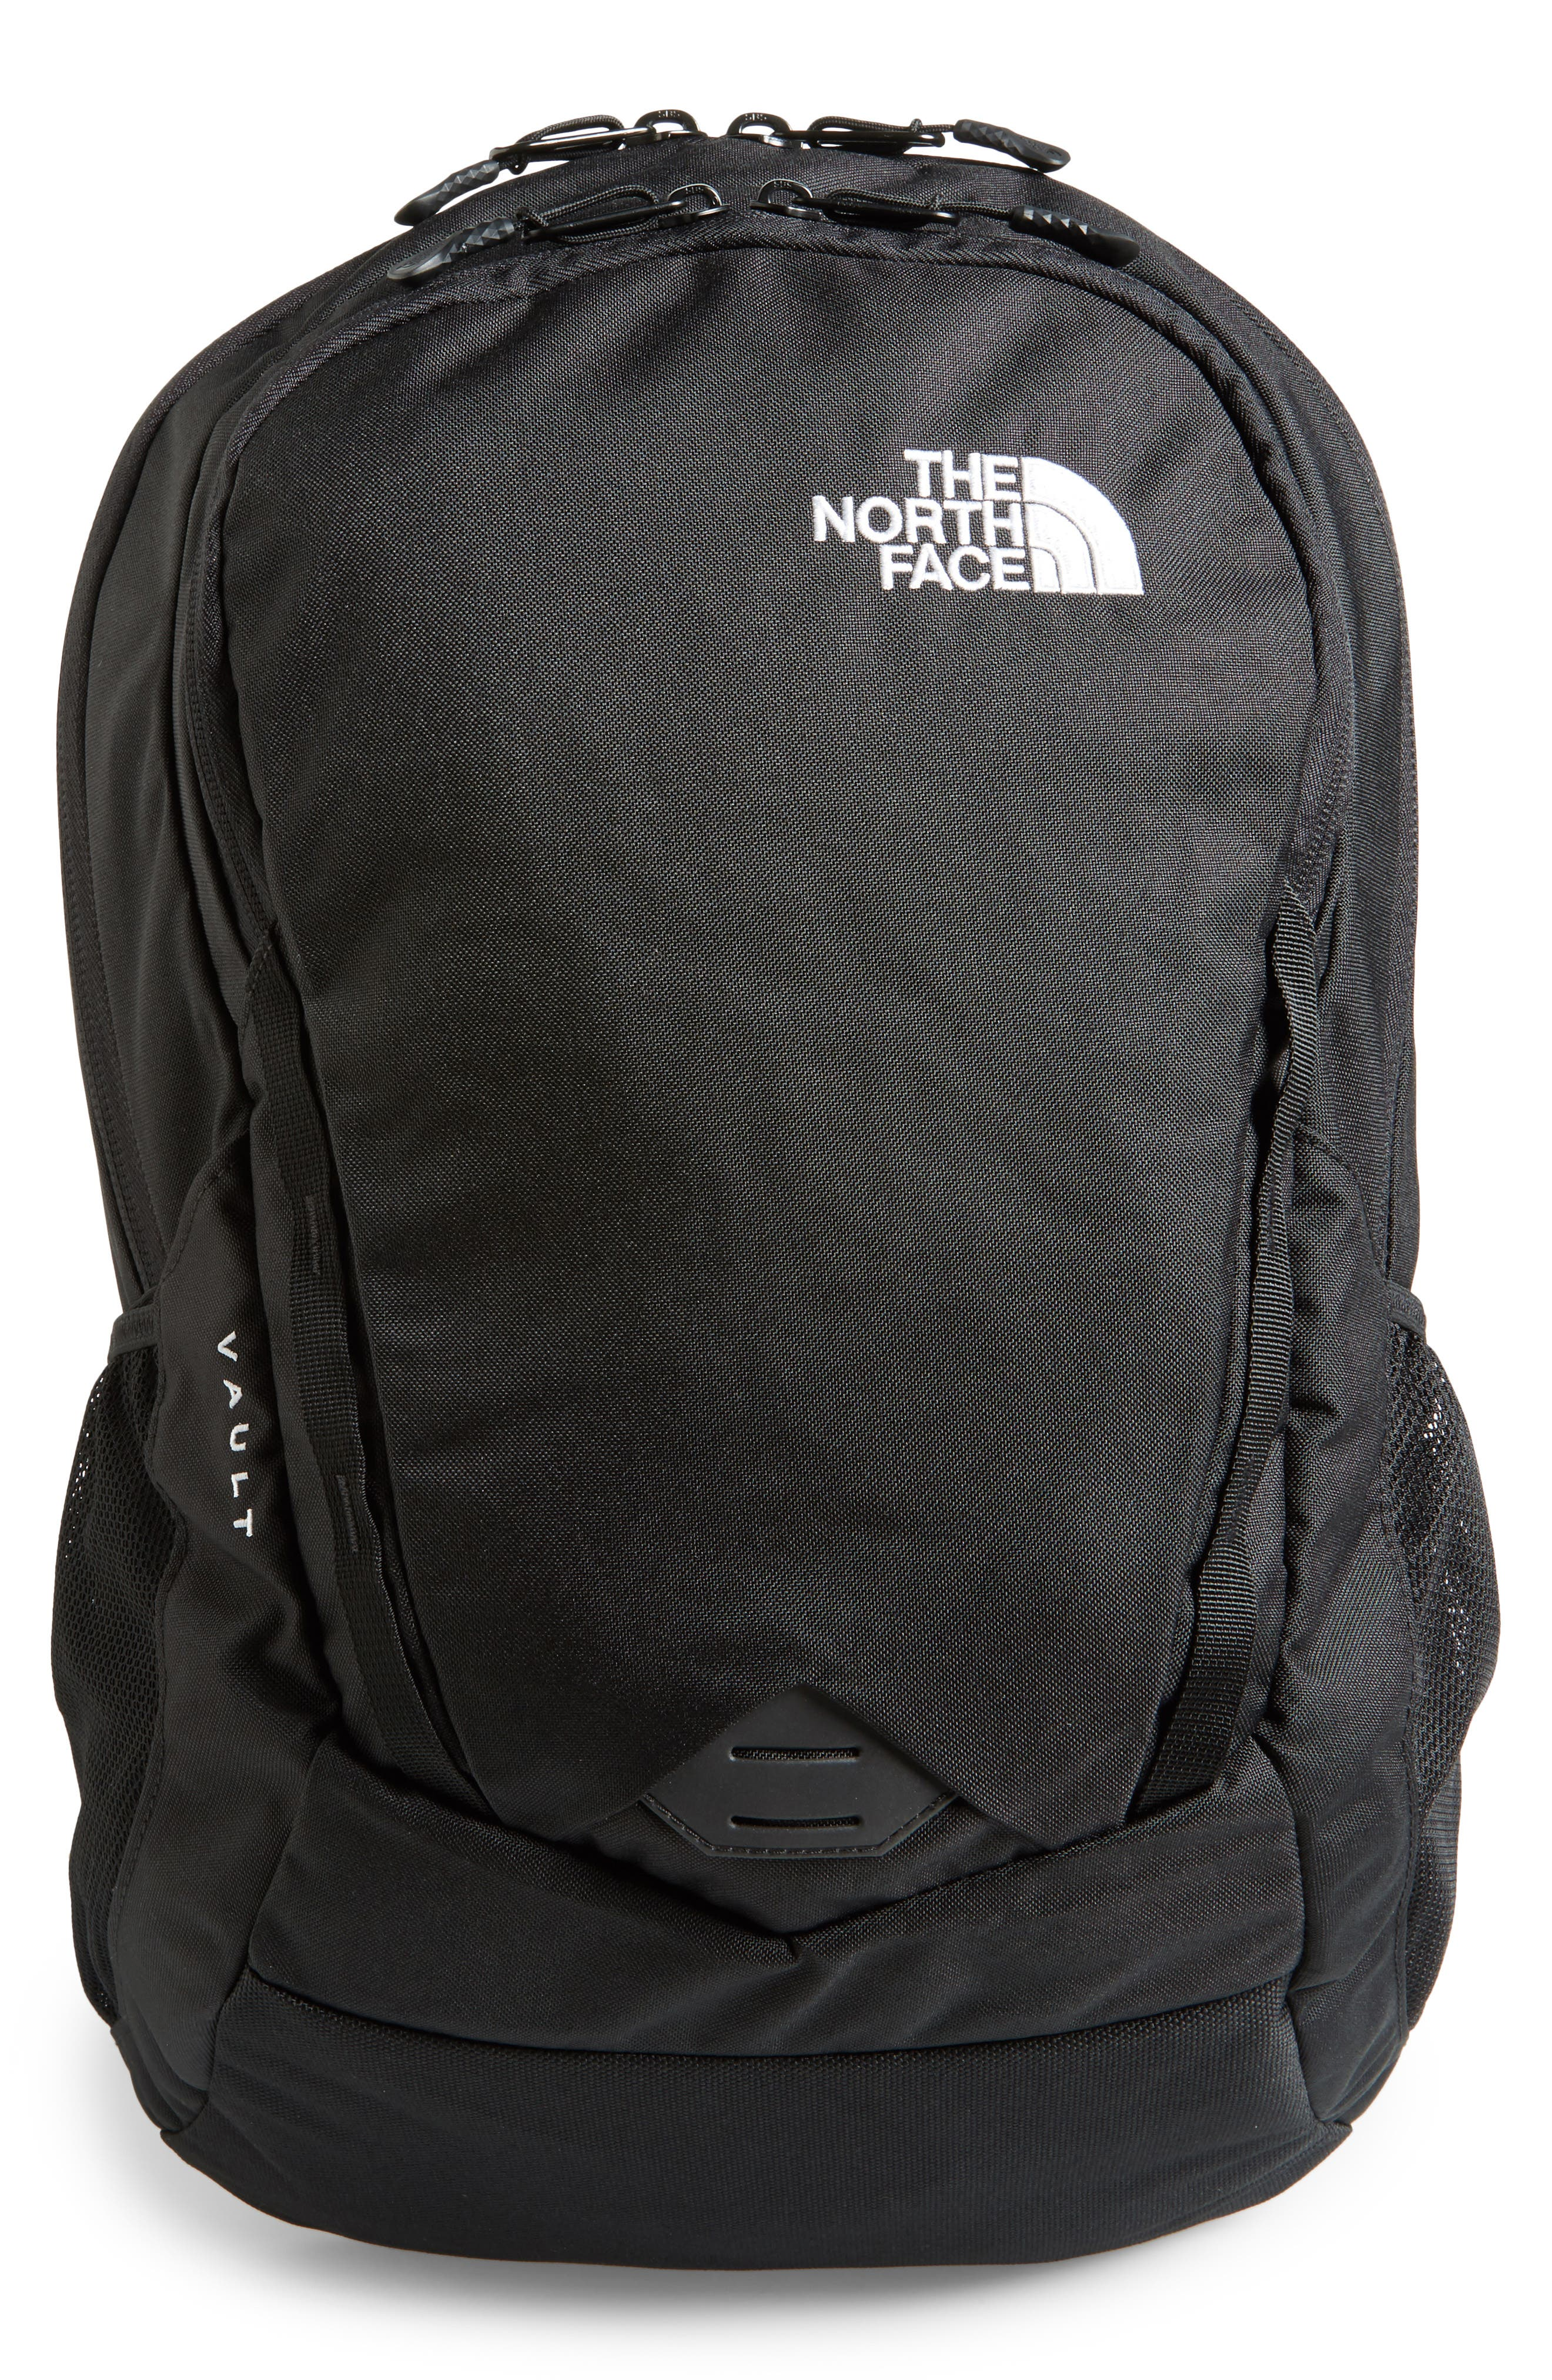 The North Face 'Vault' Backpack